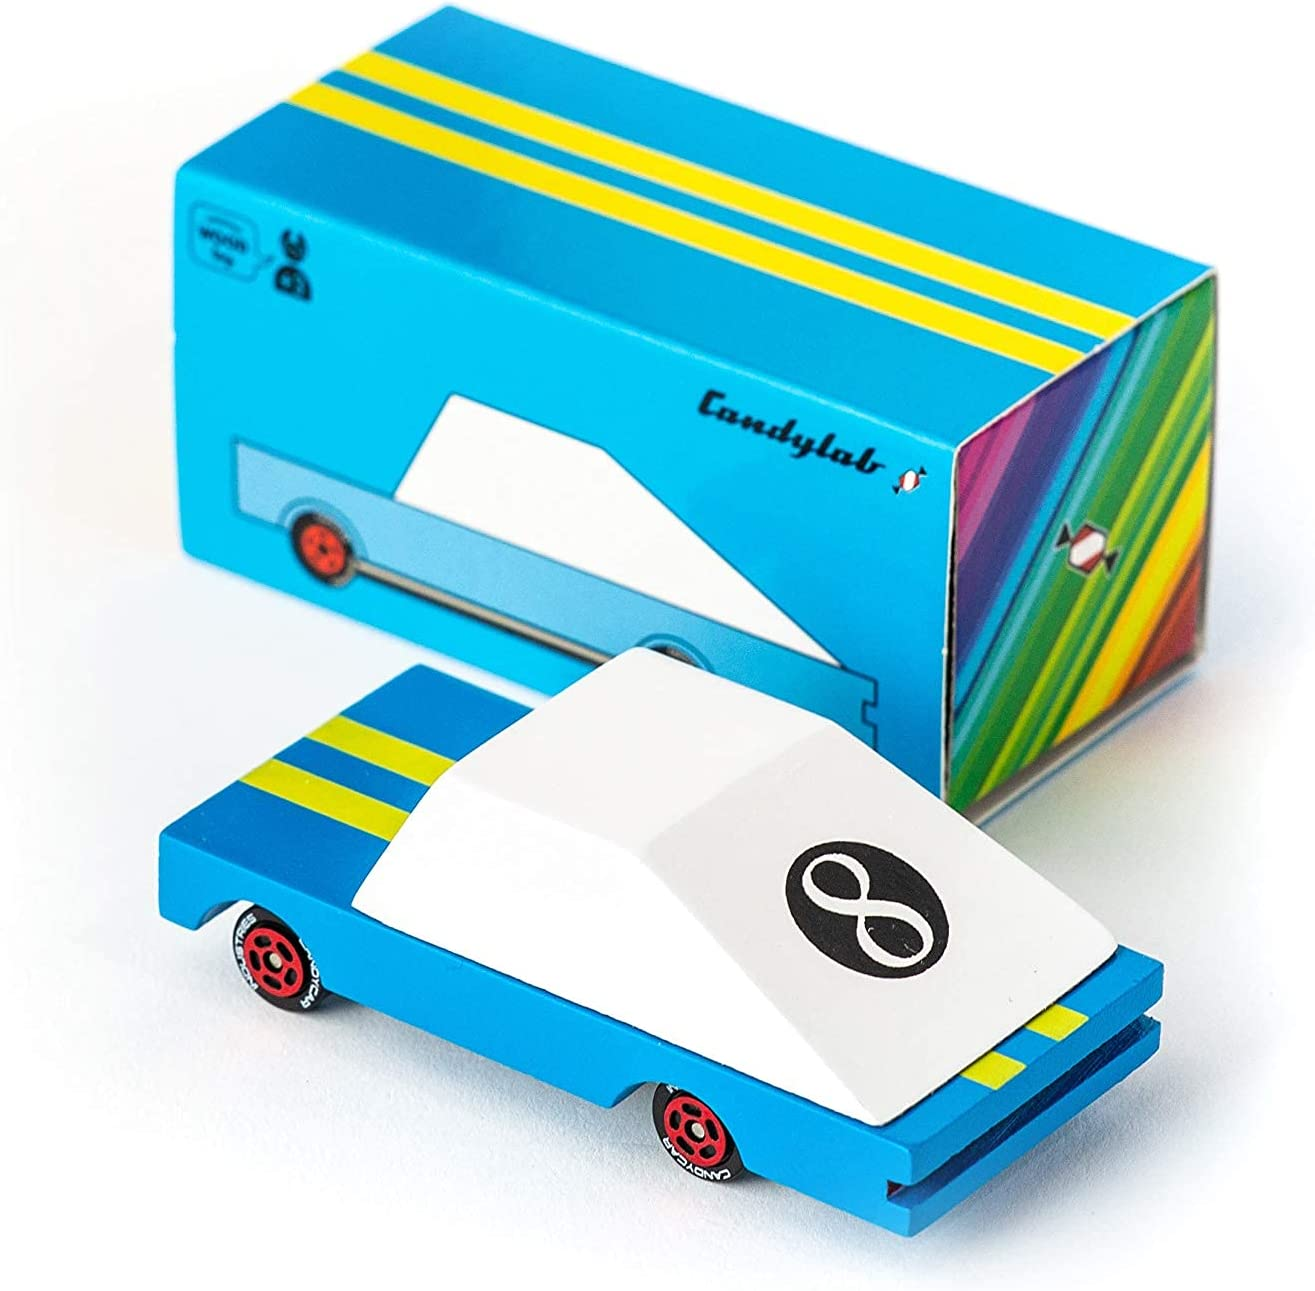 Candylab Toys Wooden Car, CandyCar Blue Racer, Kids Mini Toy Car, Solid Beech Wood